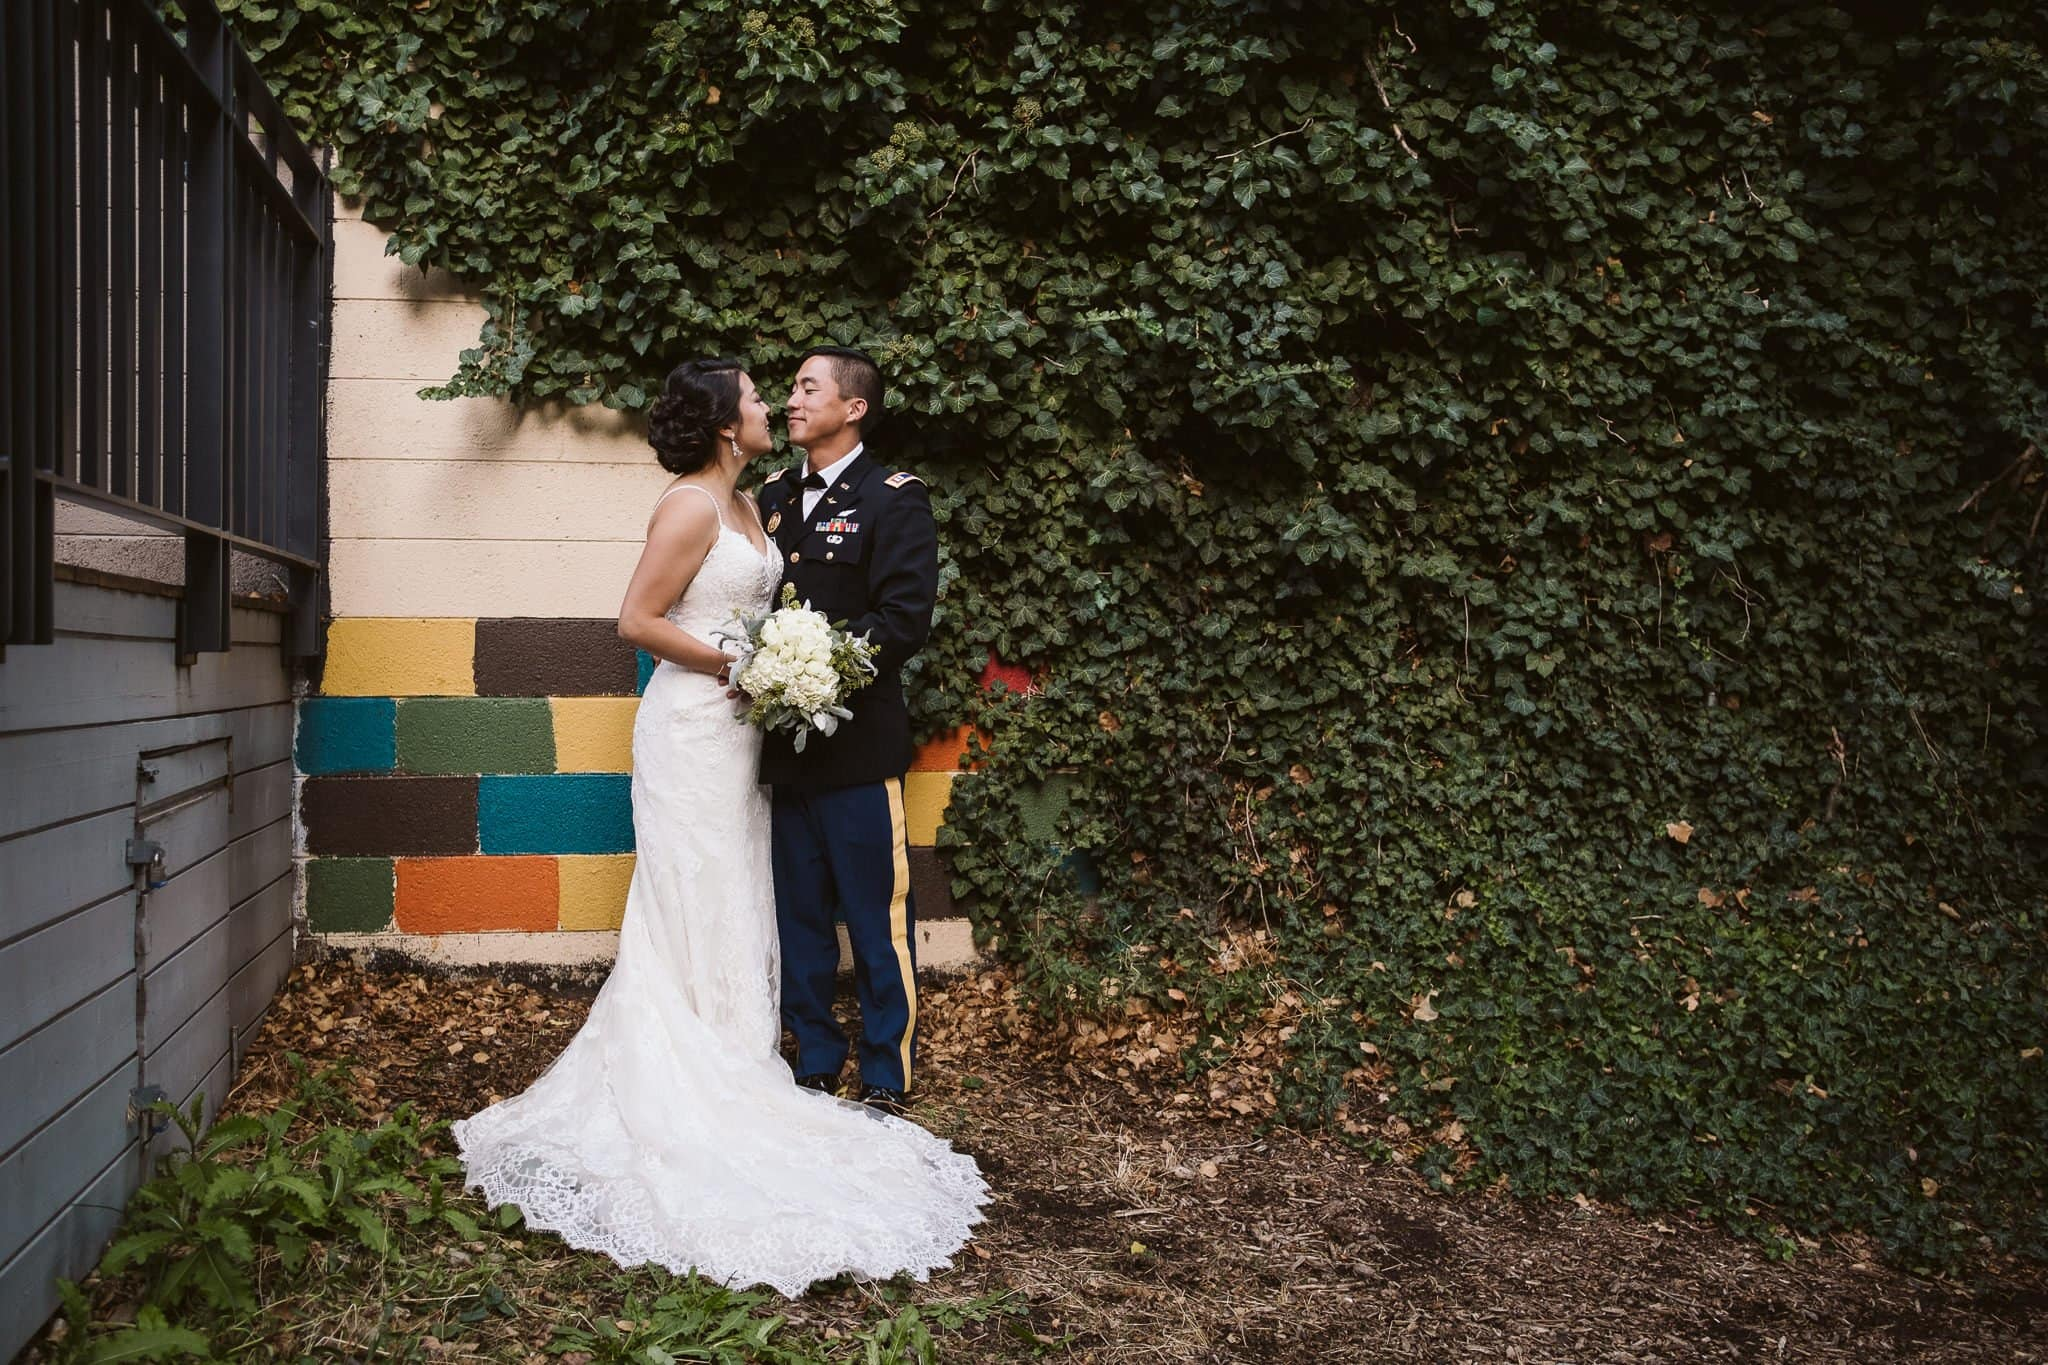 Rembrandt Yard wedding, Boulder wedding photographer